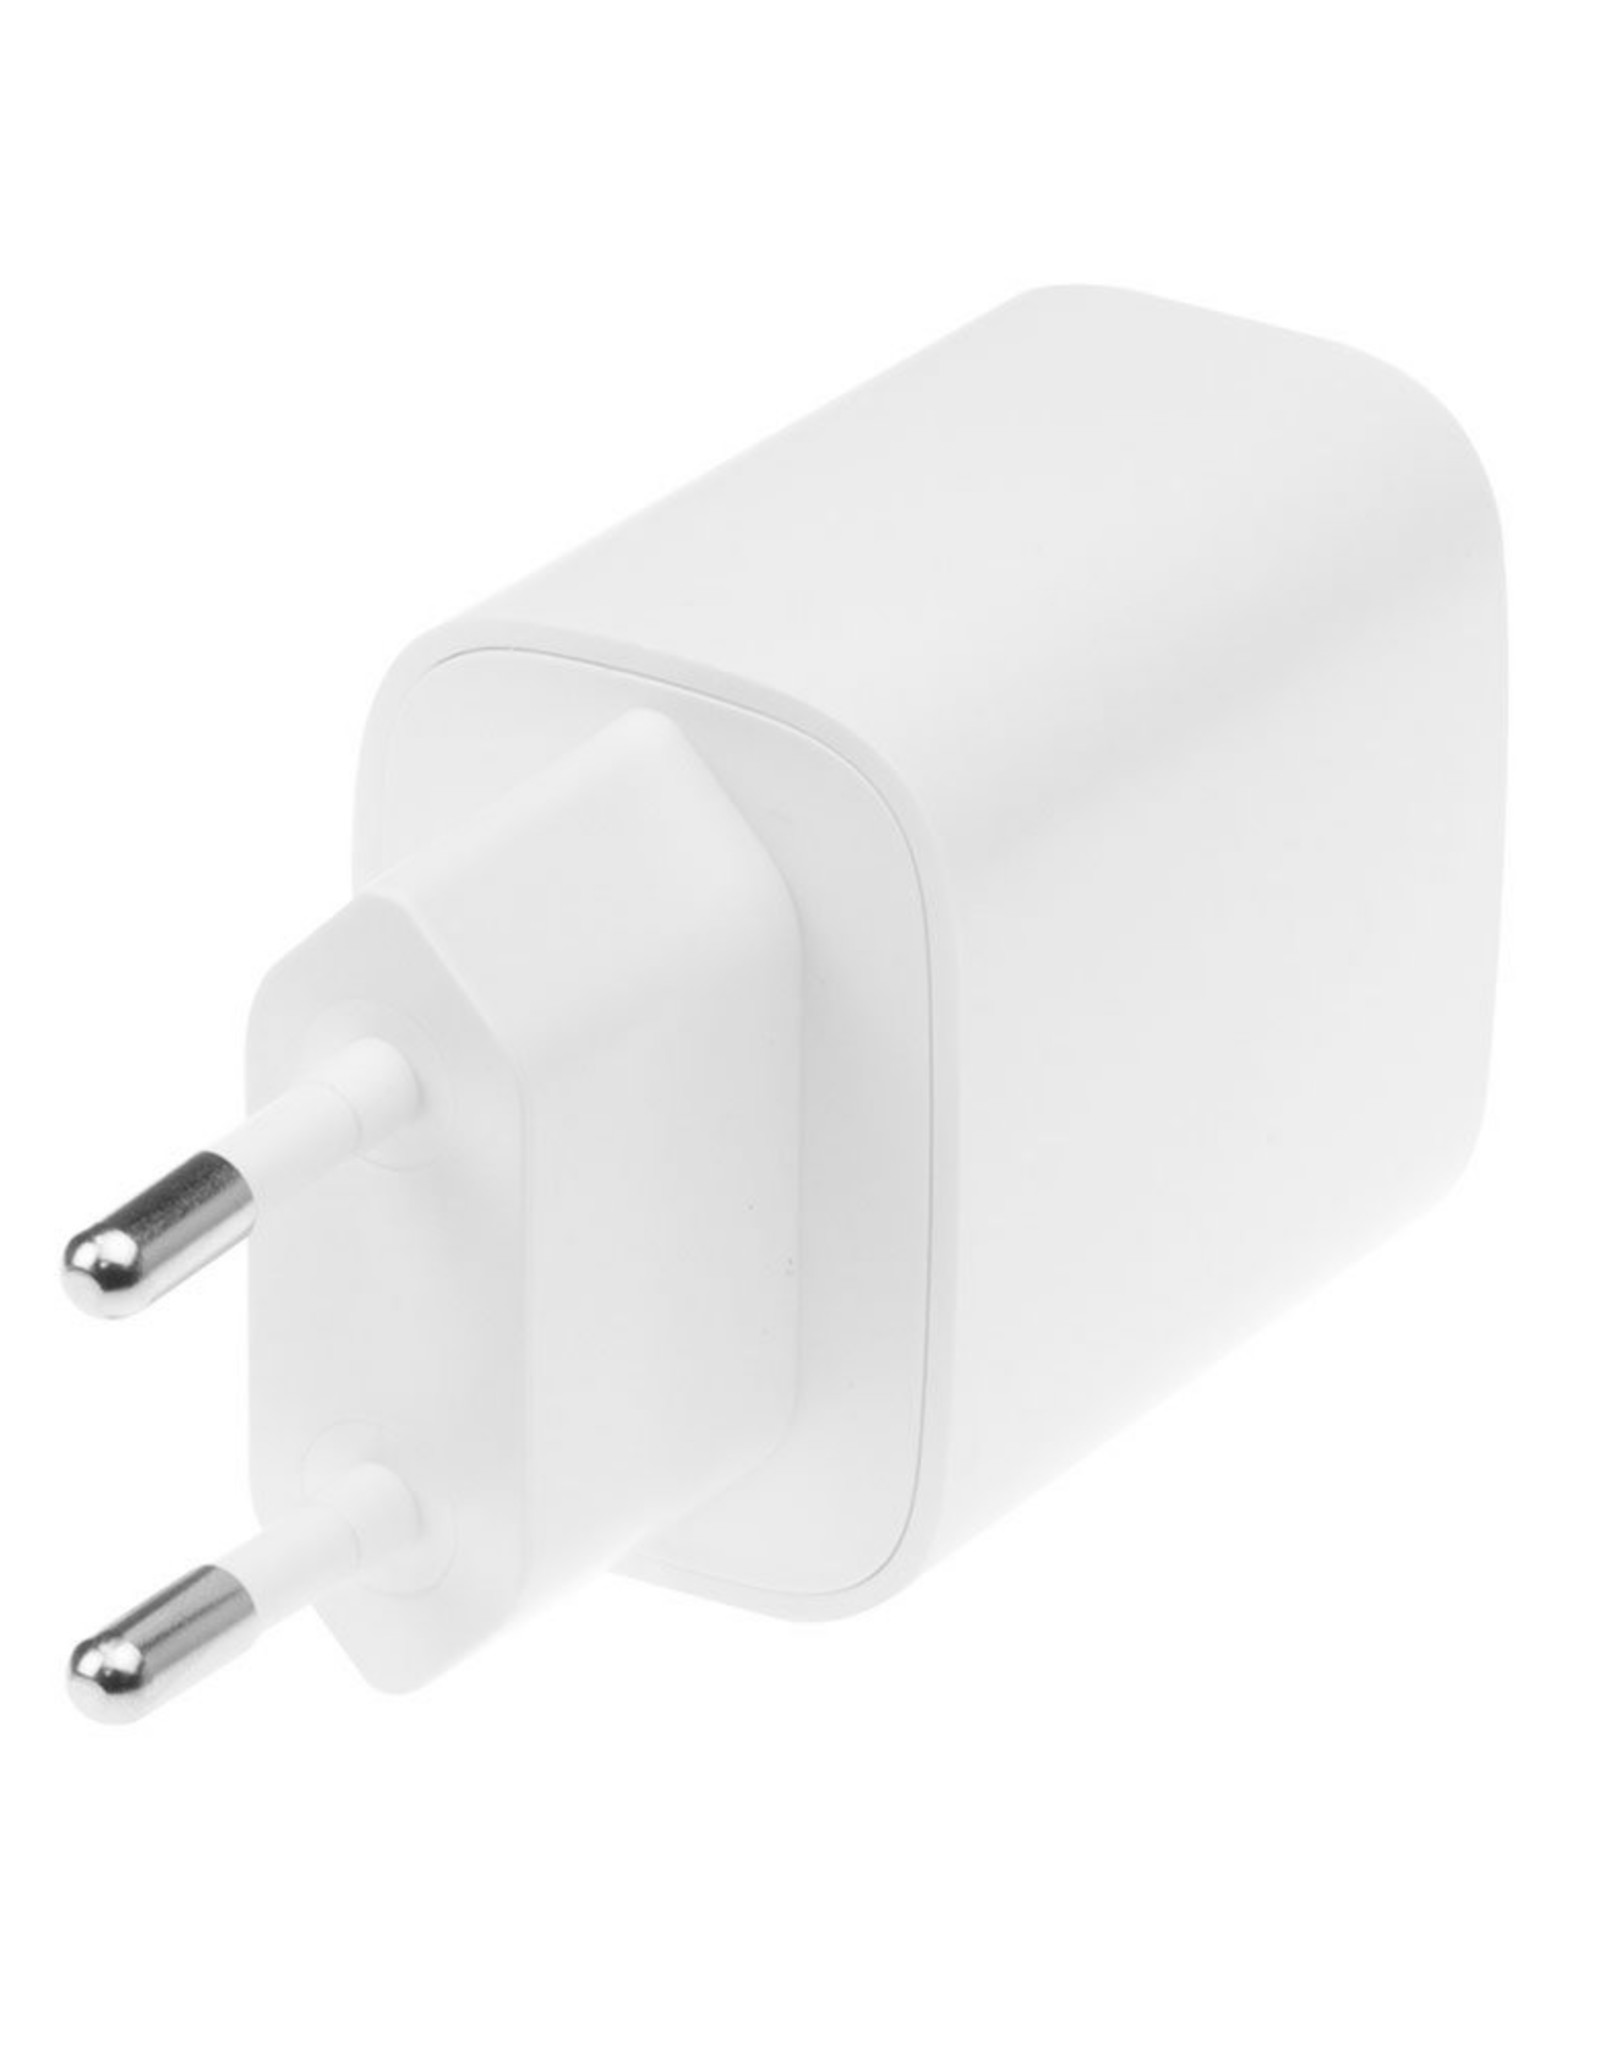 Compact USB Charger 2.4A